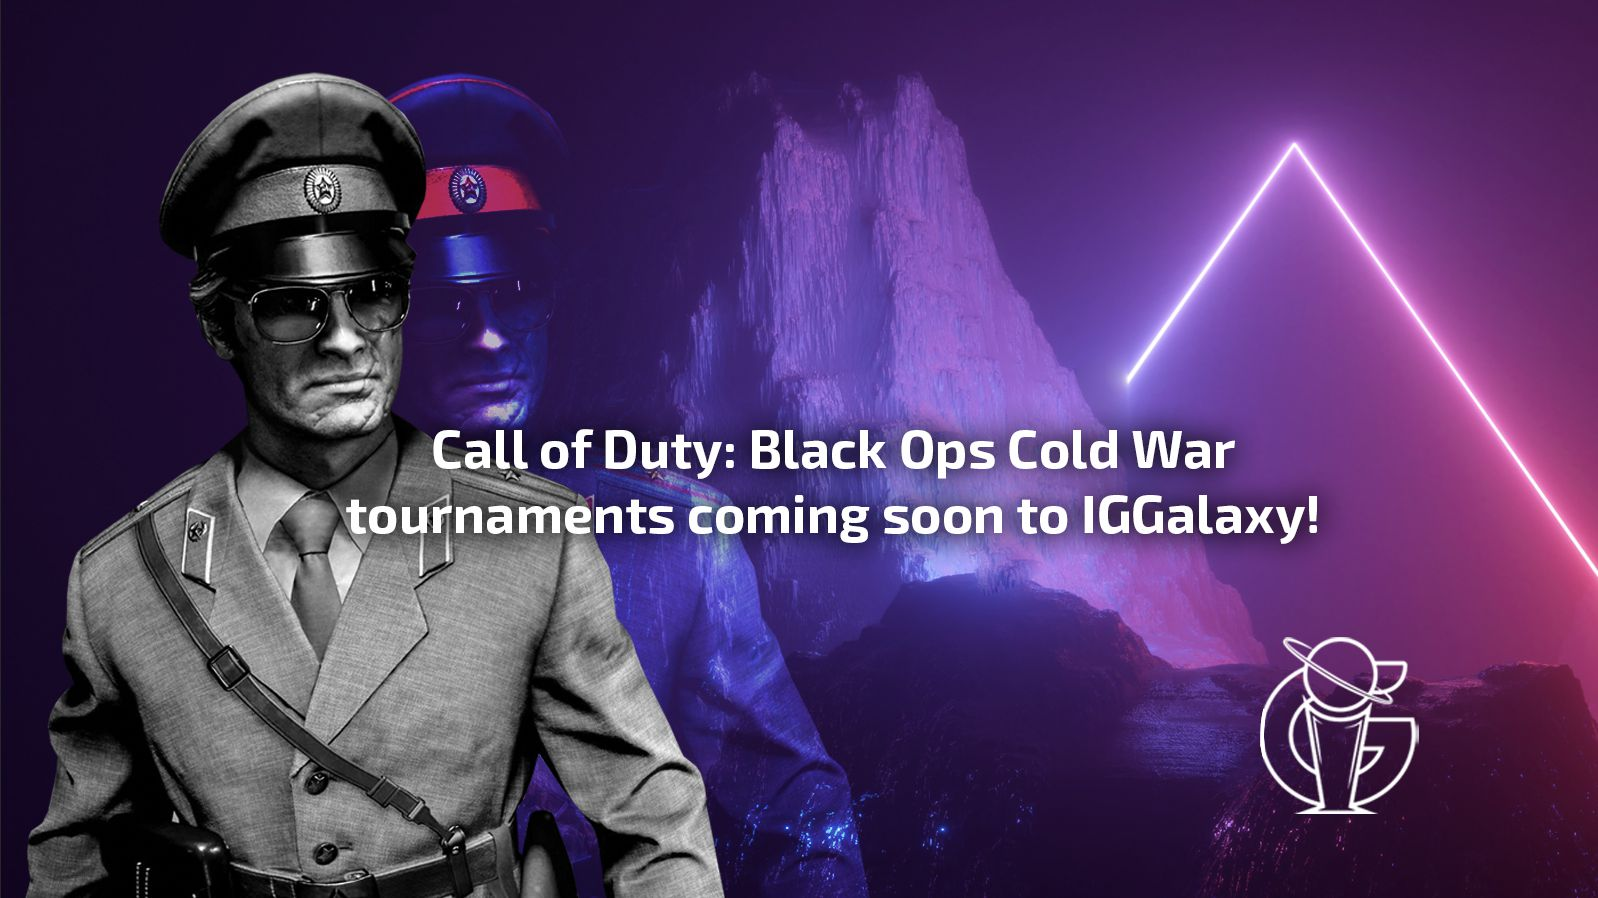 Call of Duty: Black Ops Cold War tournaments coming soon to IGGalaxy!